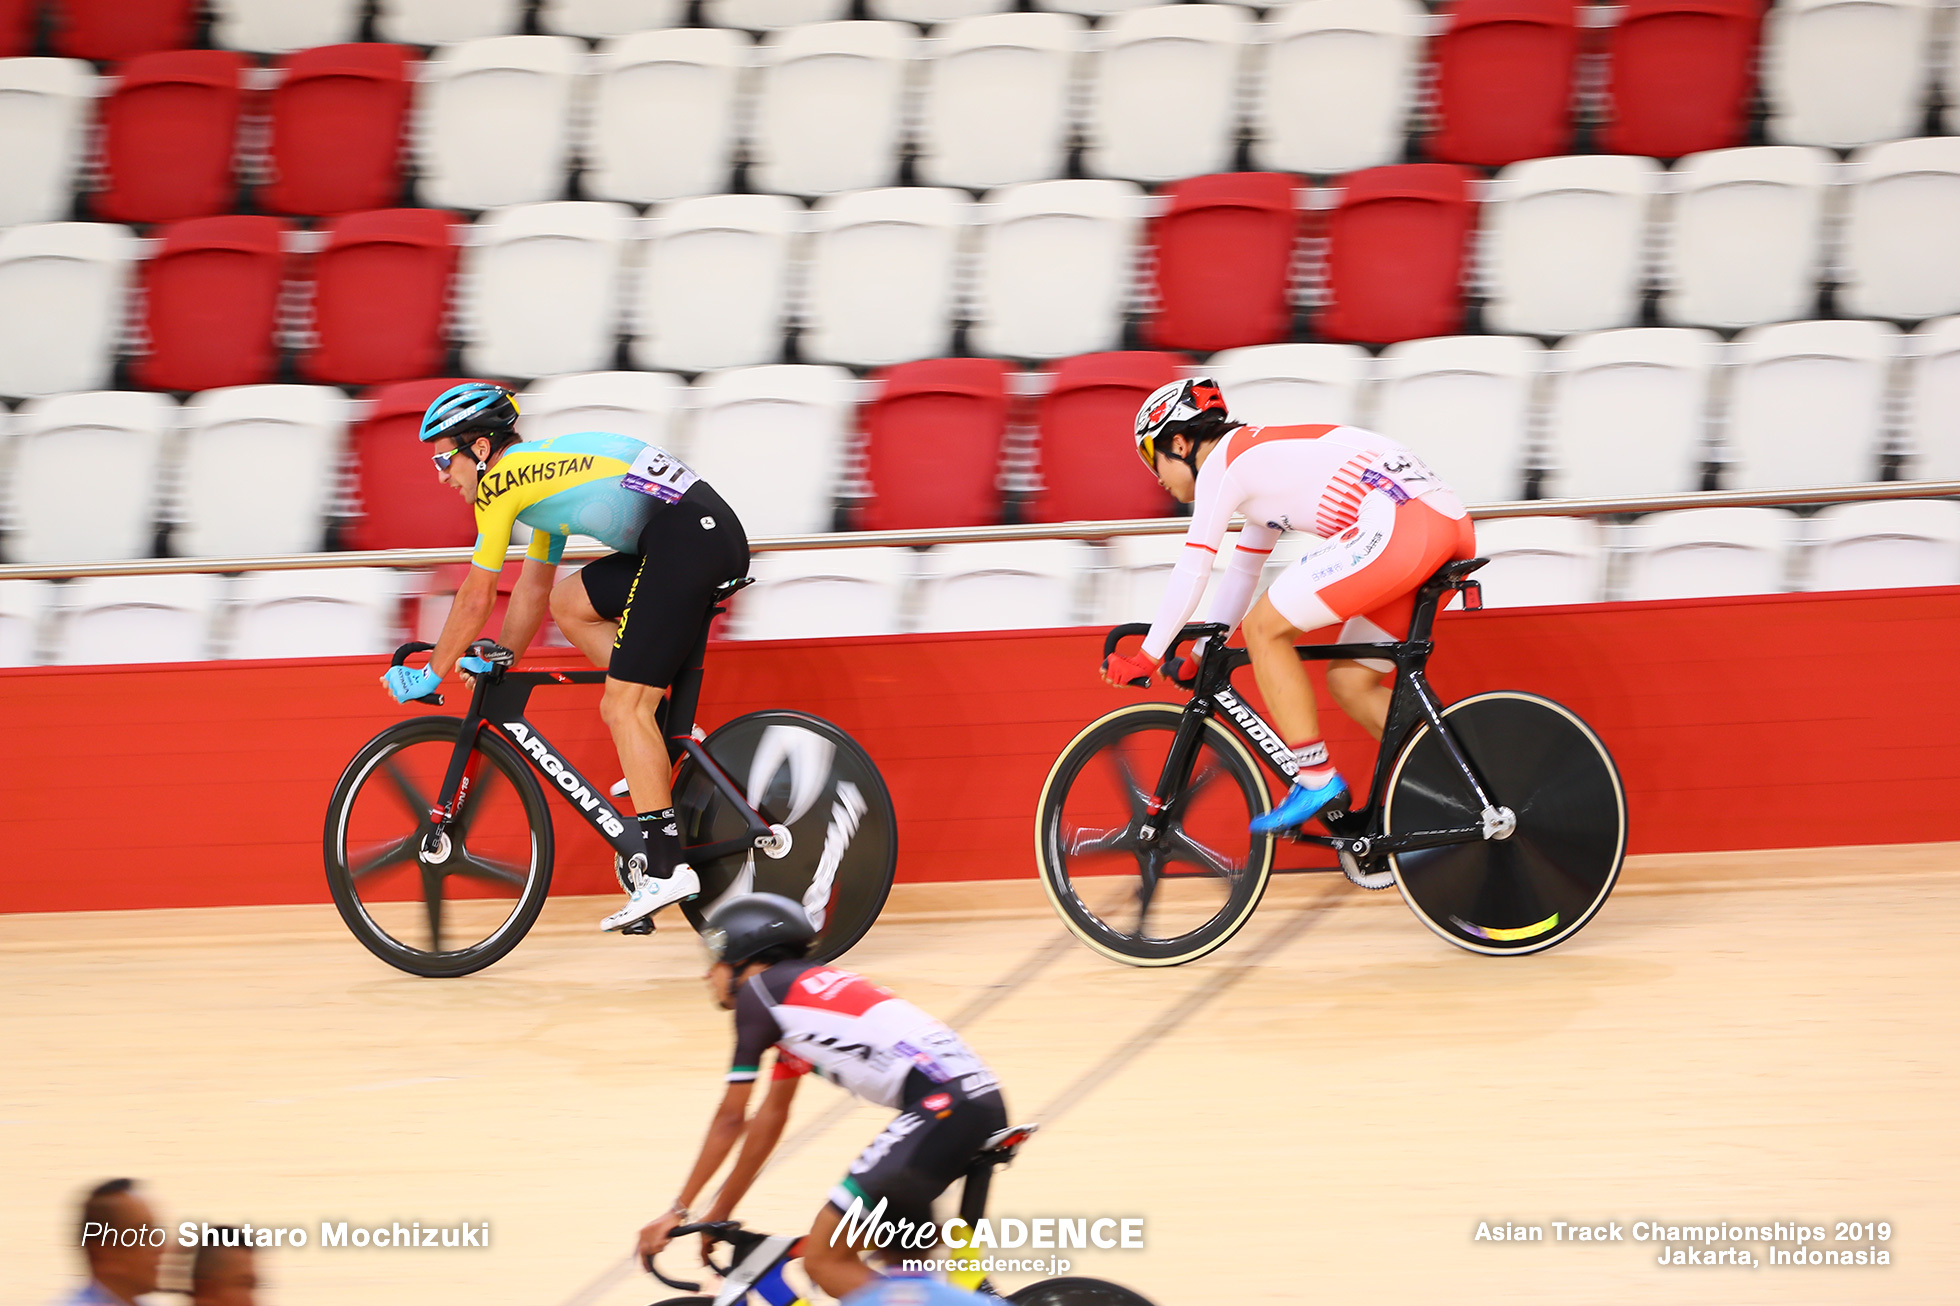 Men's Elite Omnium - Elimination / Asian Championships Track 2019 Jakarta